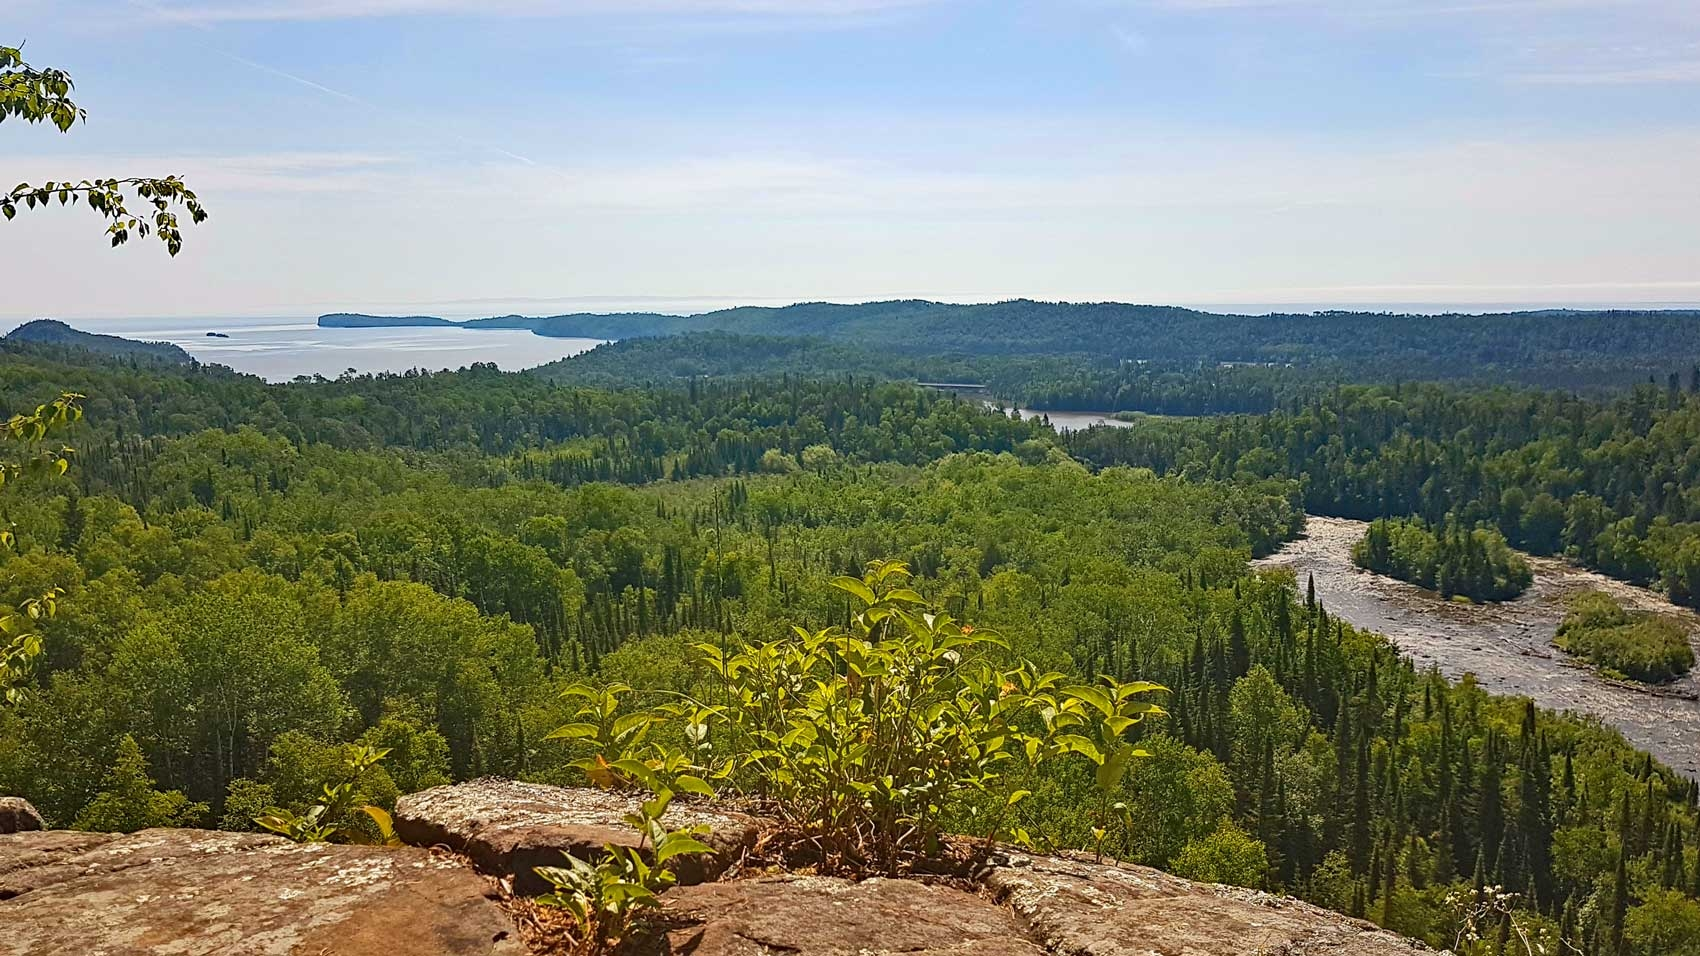 Hiking trails near Lake Superior, Pigeon River